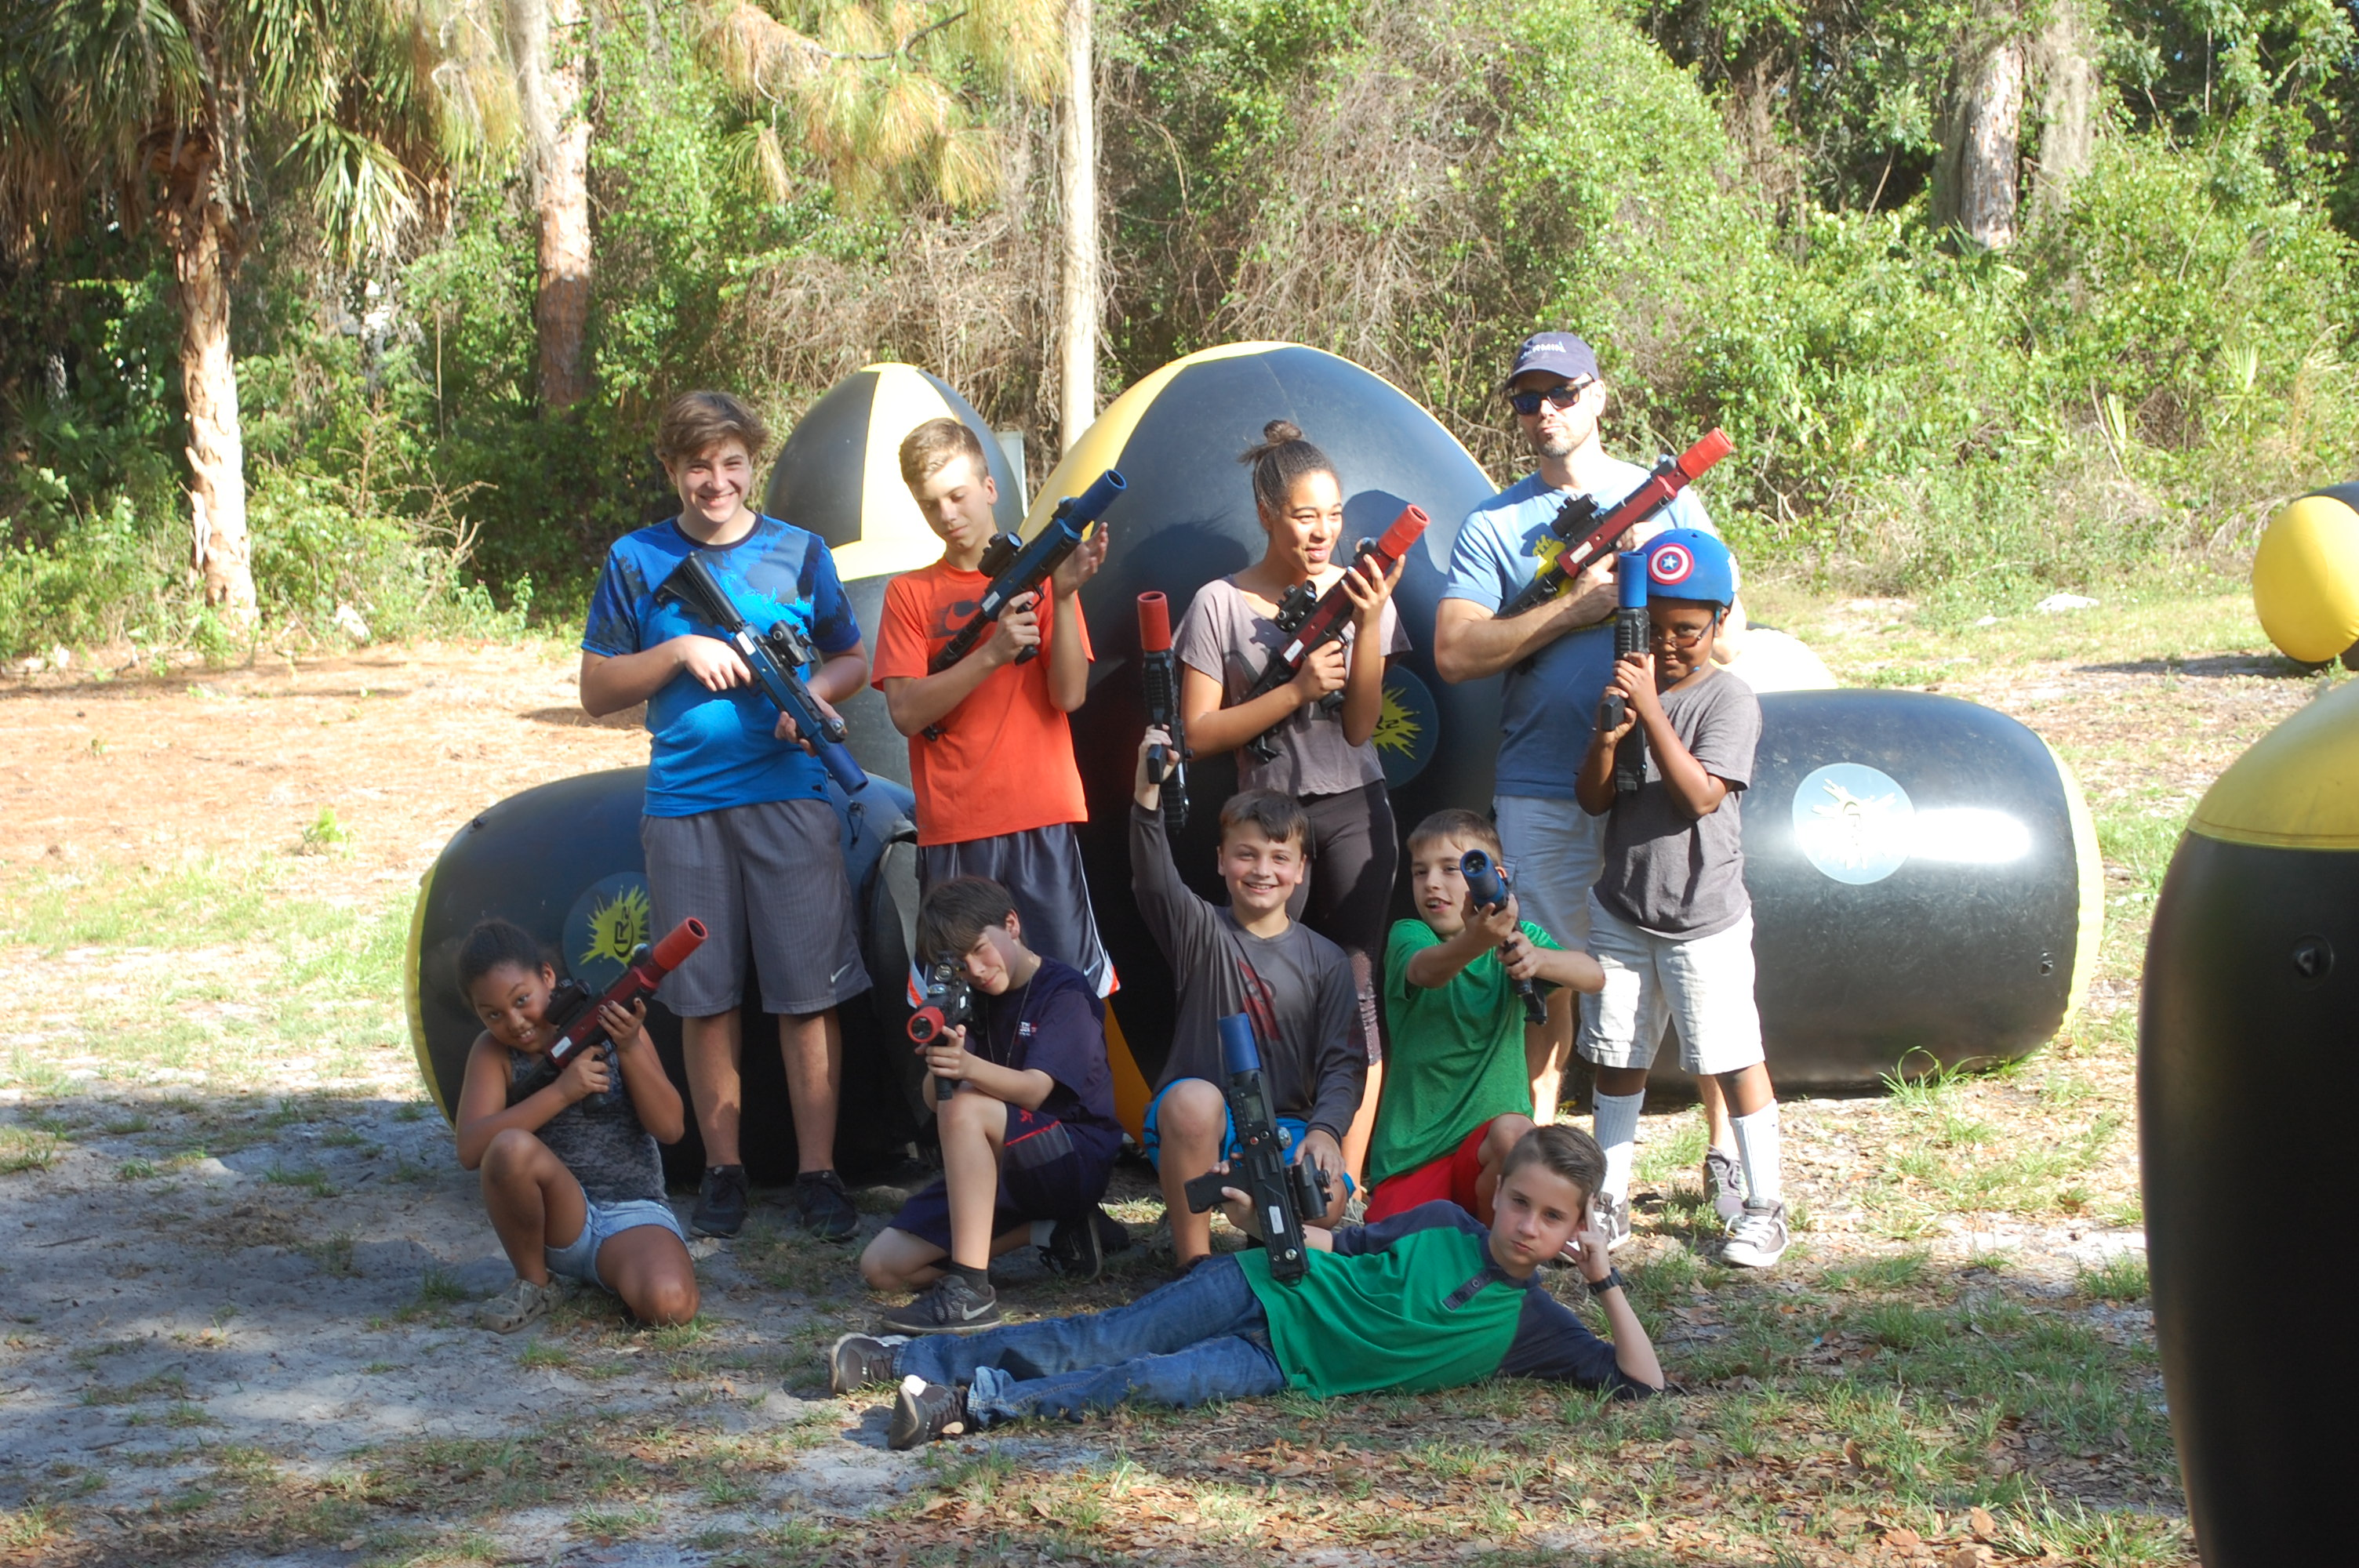 Fun things to do with the family FL